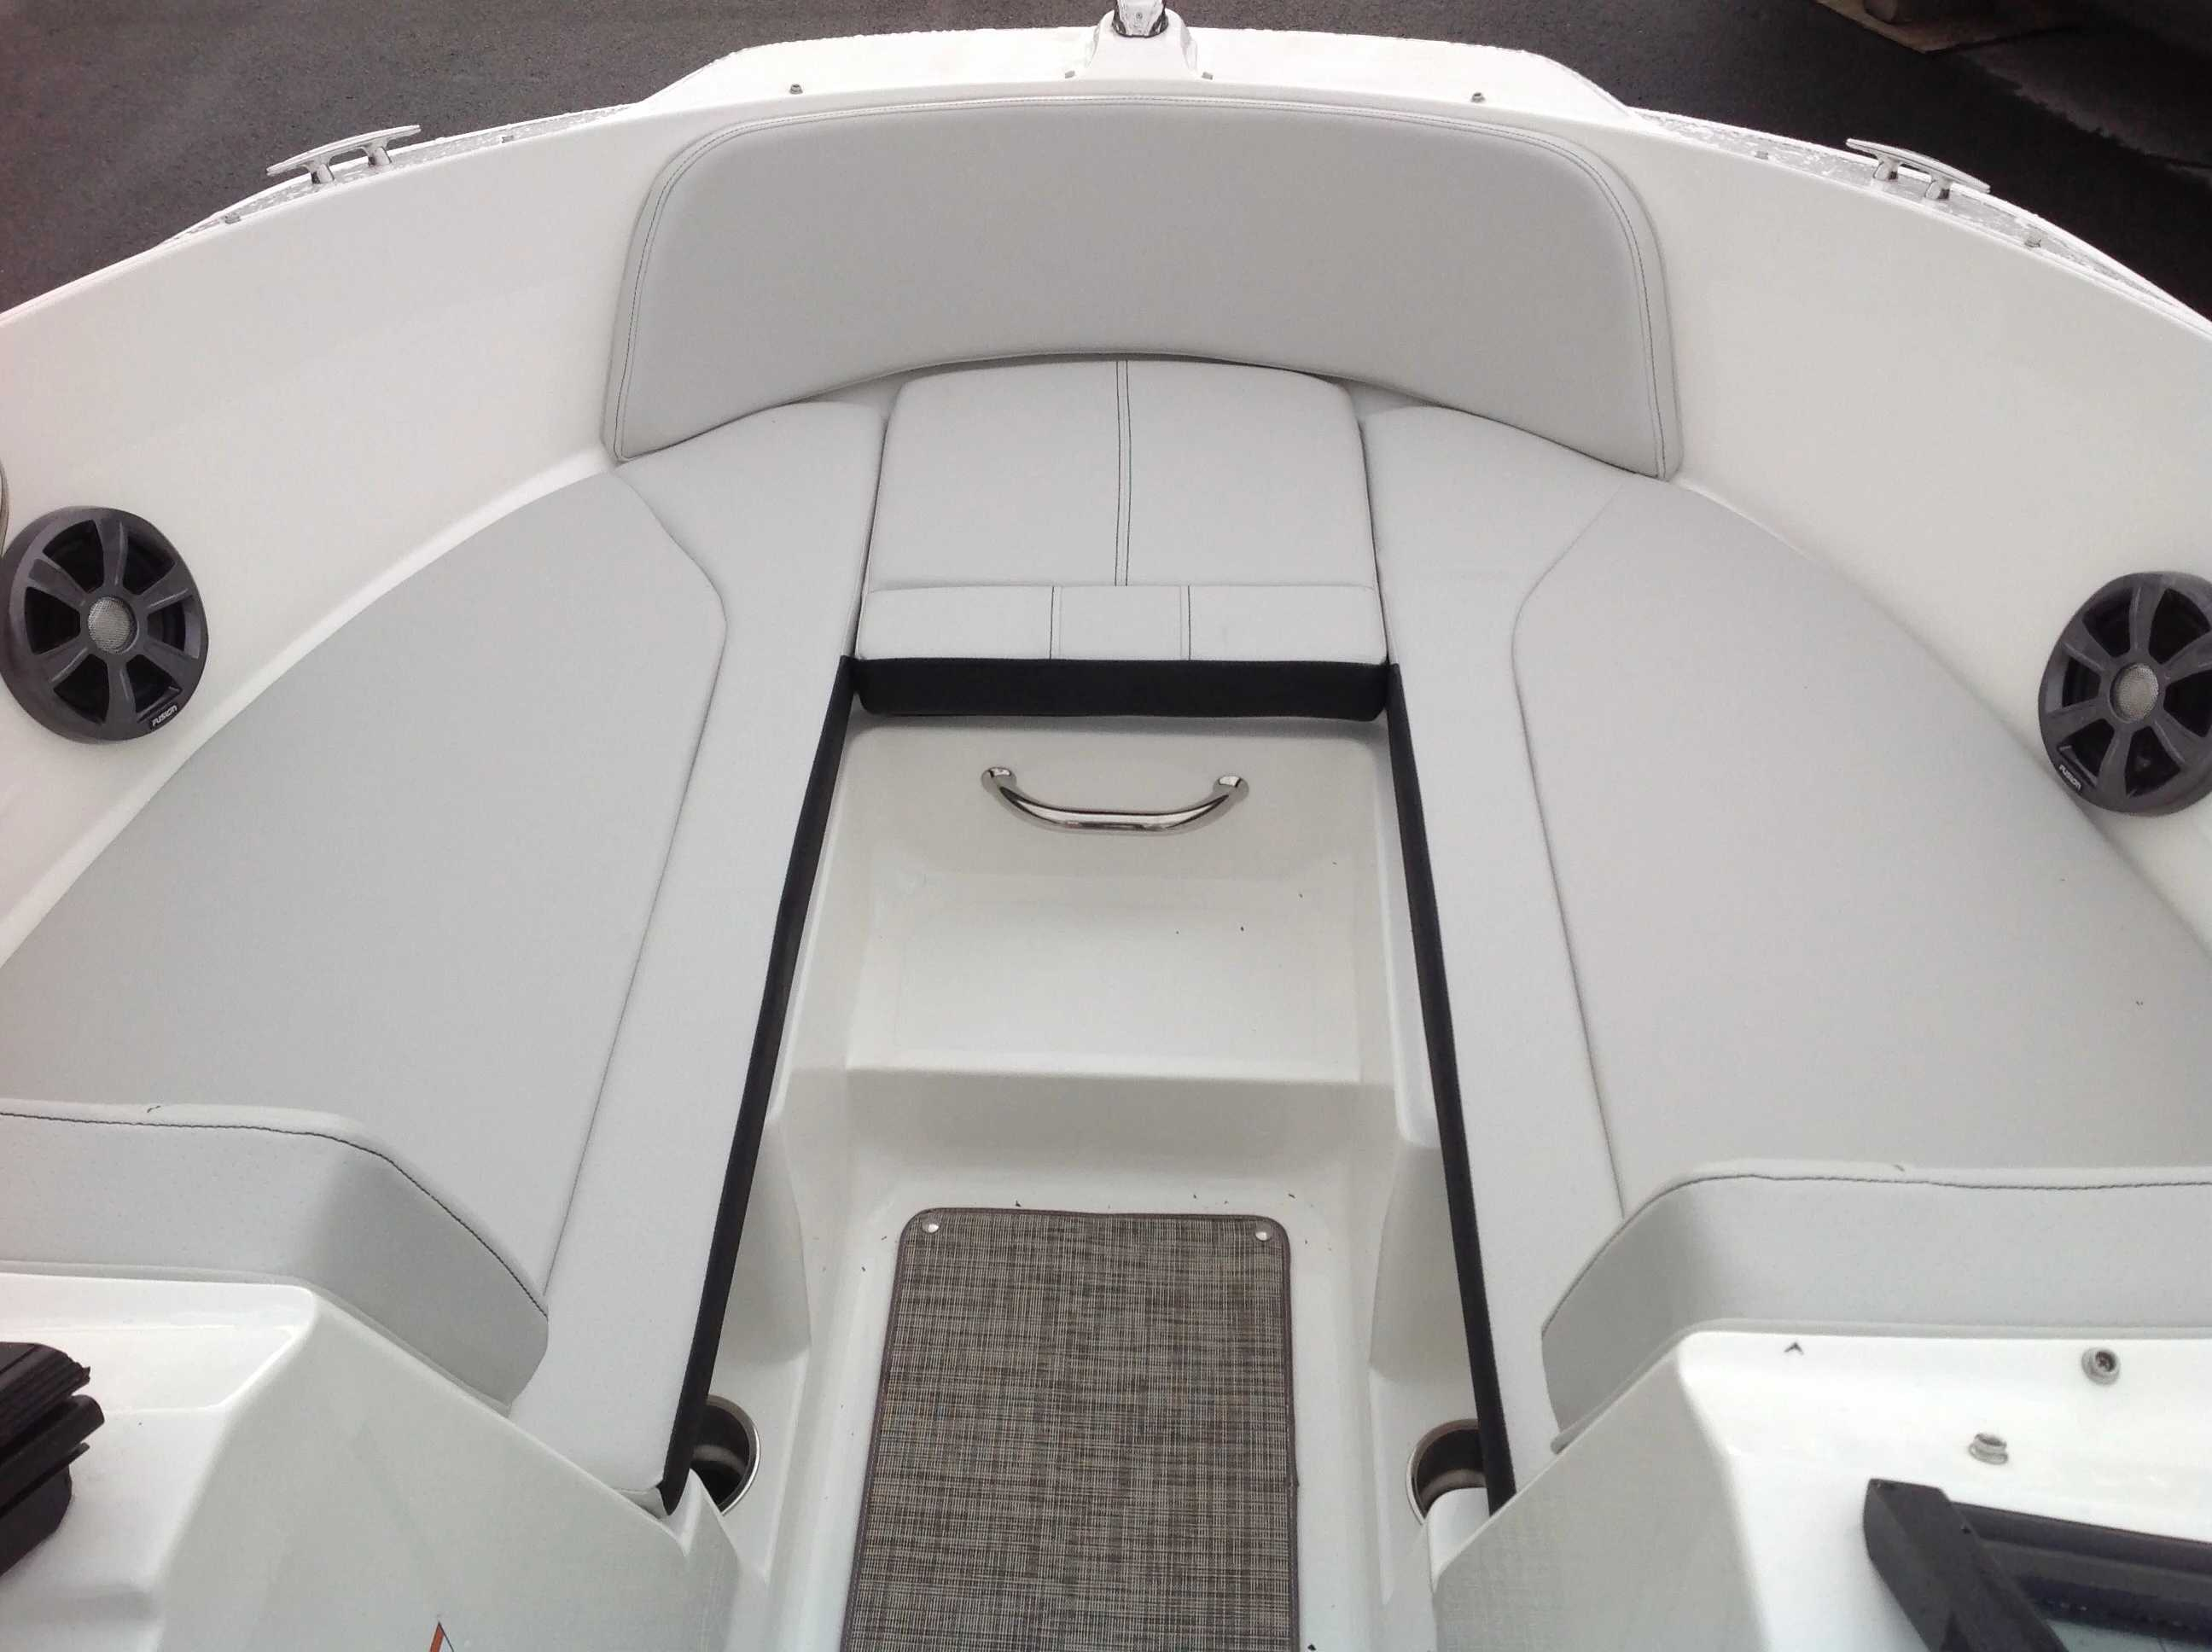 2022 Sea Ray boat for sale, model of the boat is 210spx & Image # 2 of 8